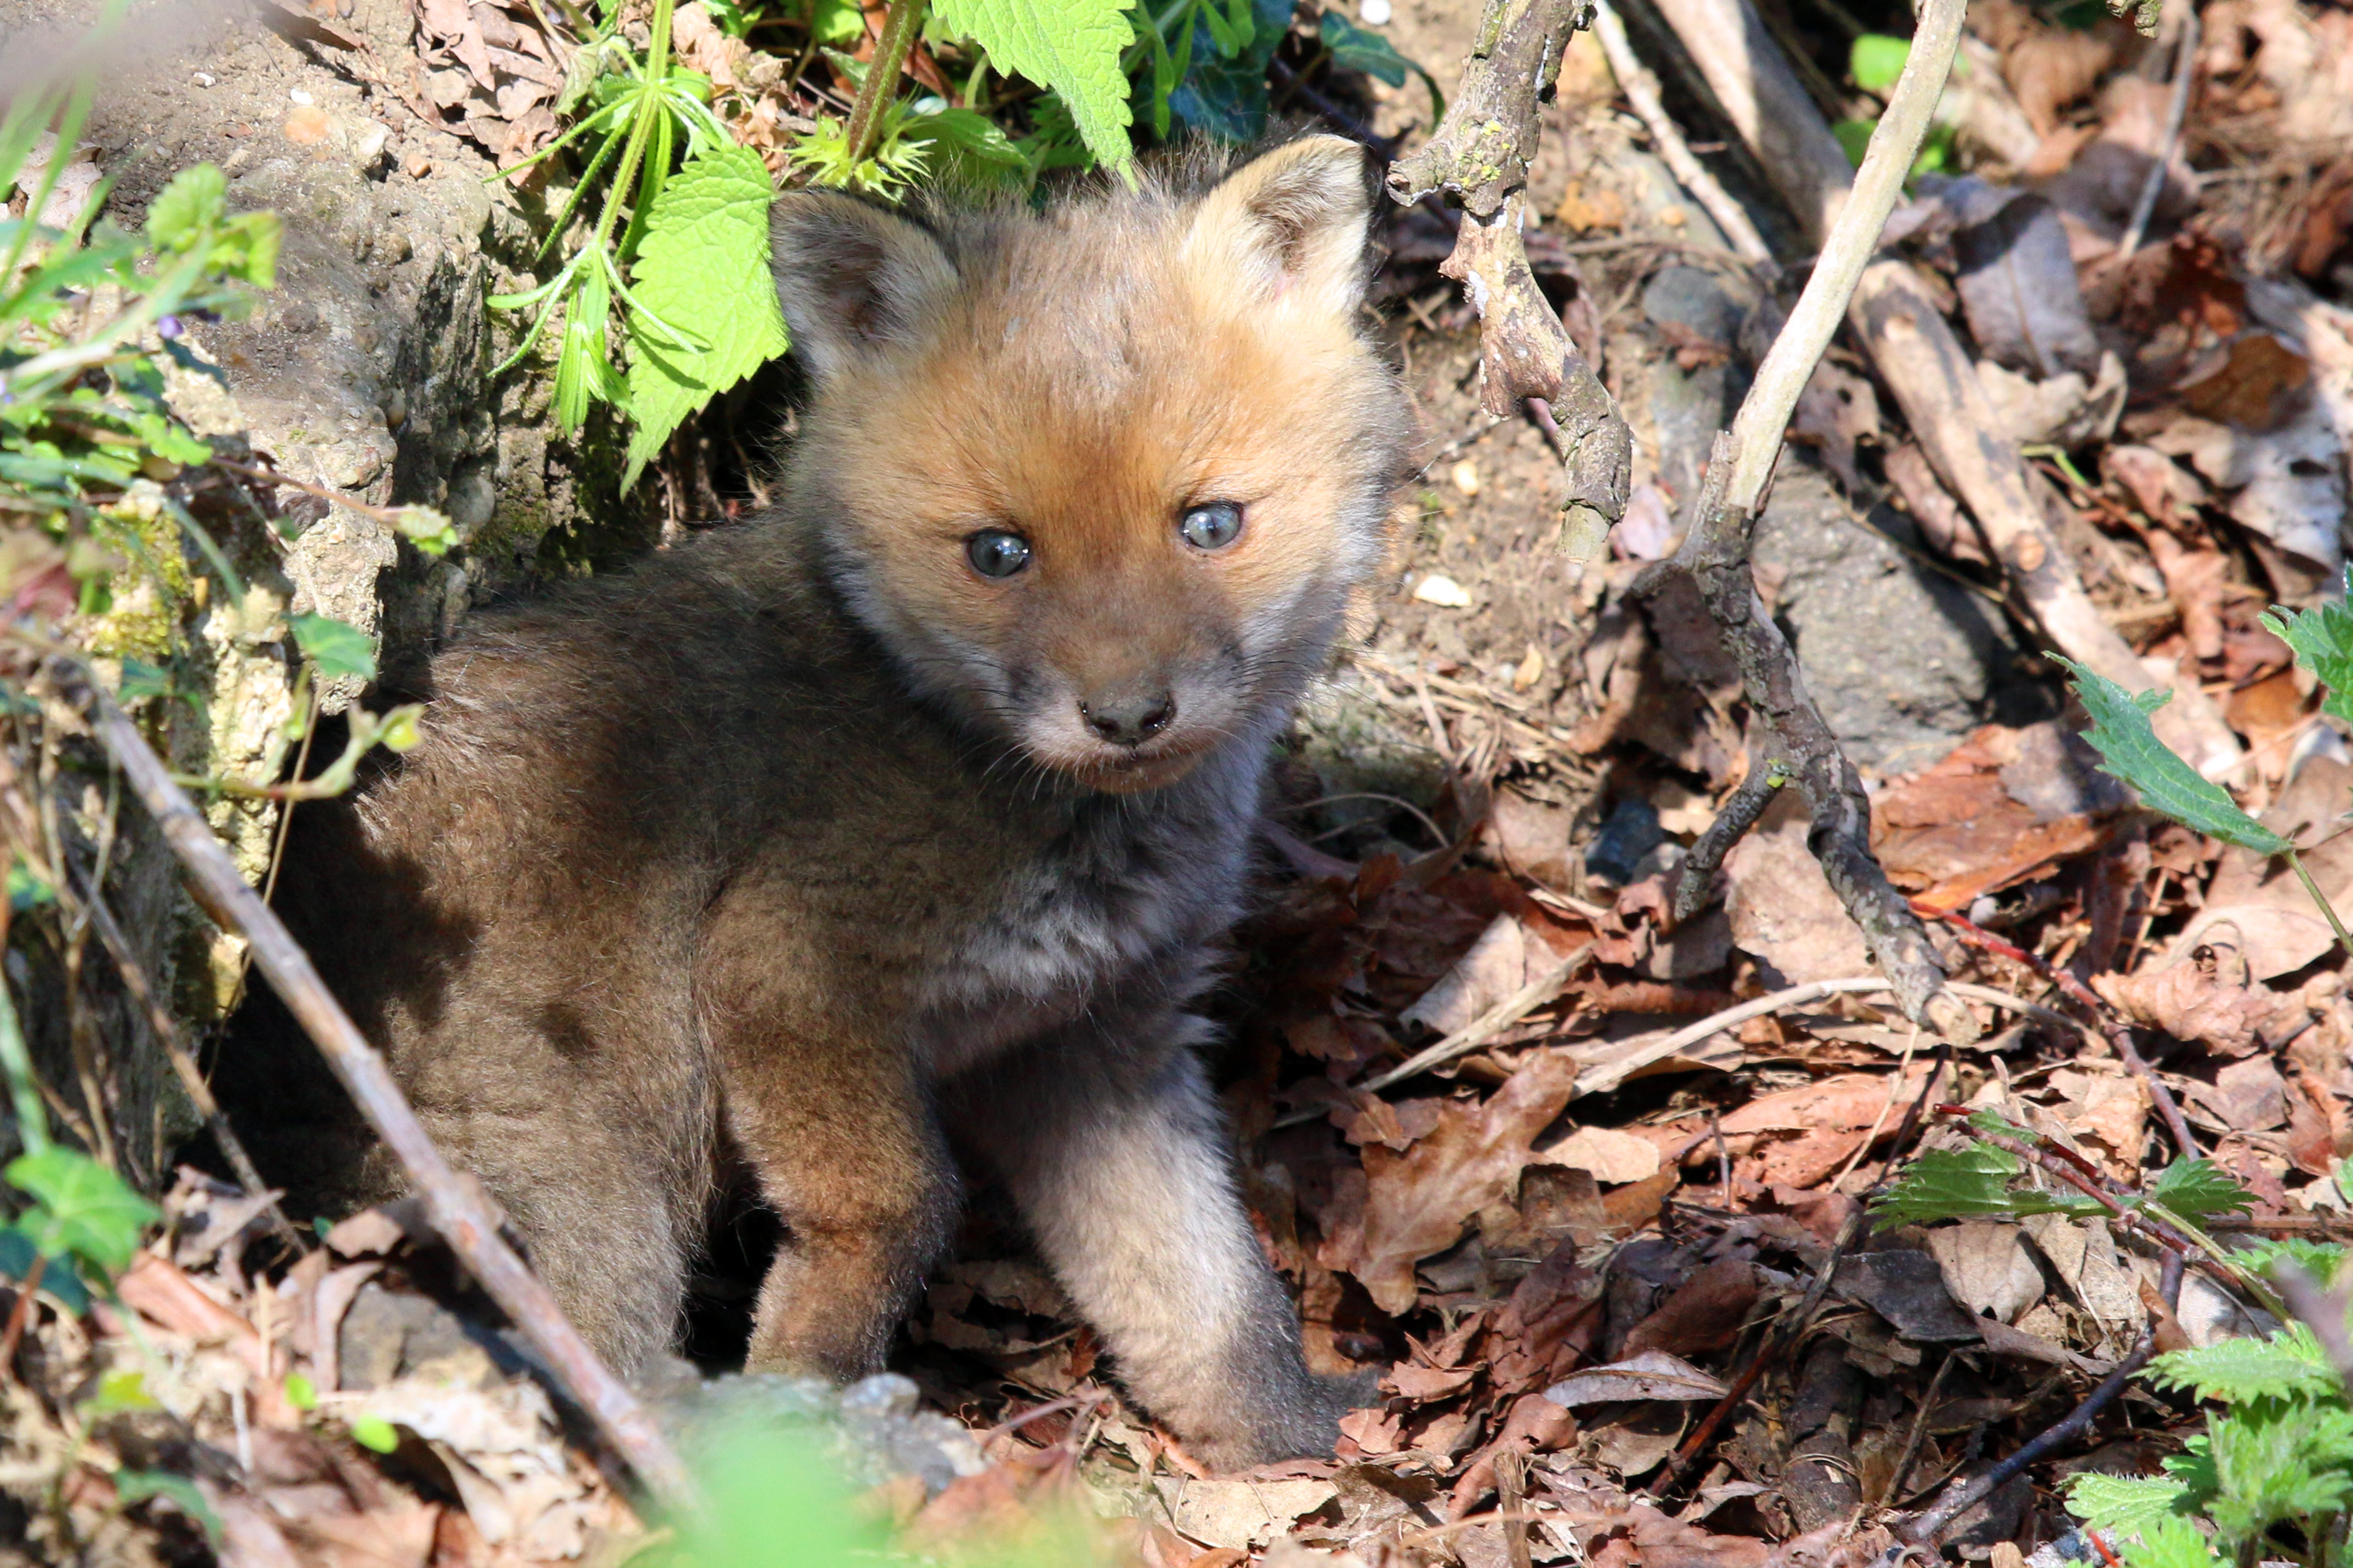 Red fox kit (Vulpes vulpes) emerging from a burrow, North Abingdon, Oxfordshire. Photo taken on April 10, 2014.